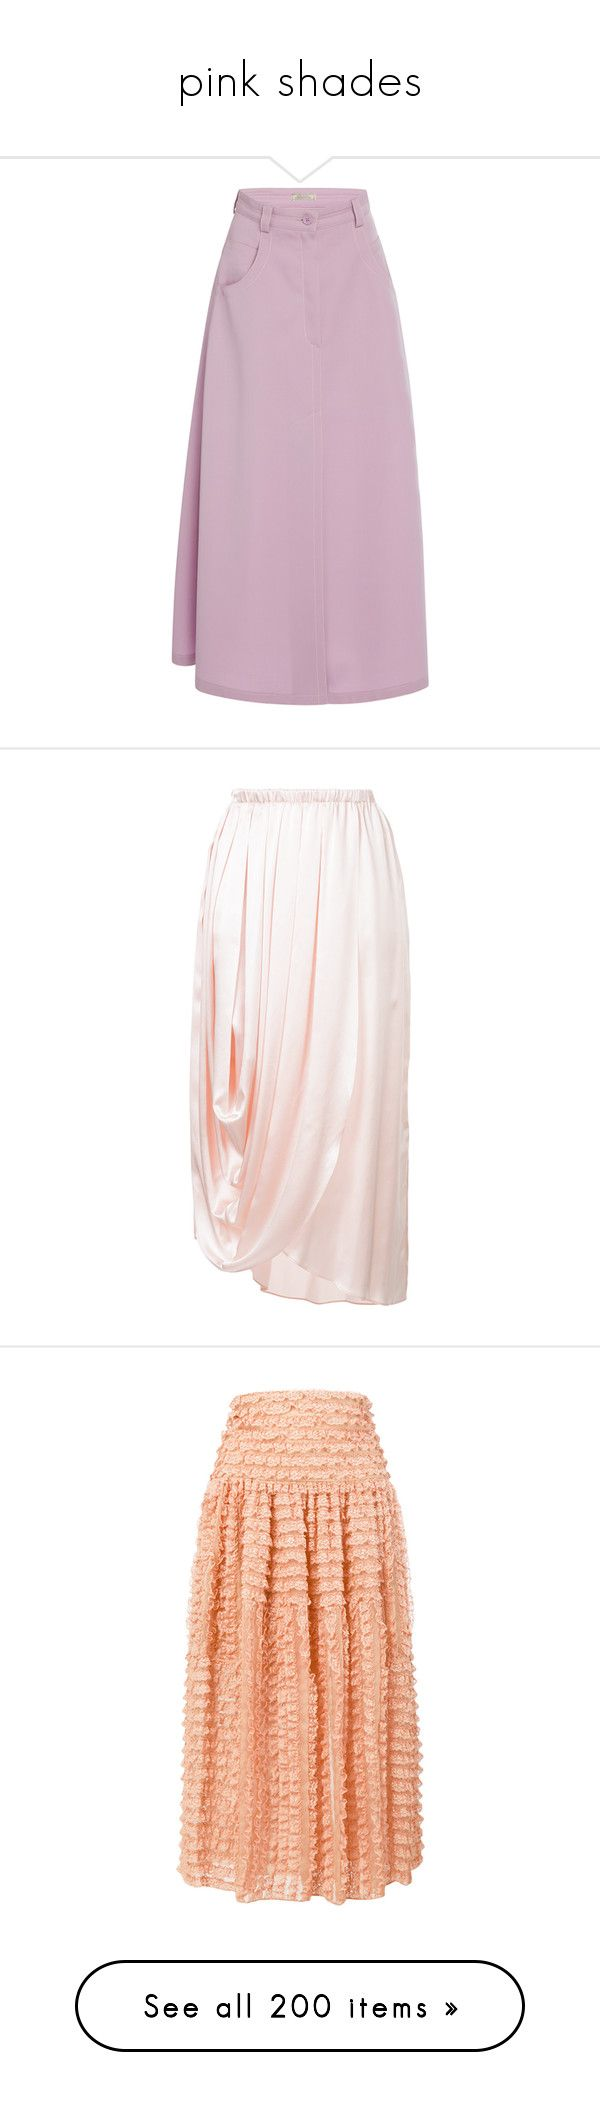 """""""pink shades"""" by jeniferkcarsrud ❤ liked on Polyvore featuring skirts, purple, purple high waisted skirt, purple skirt, wool skirt, mid length skirts, pink high waisted skirt, pink, light pink midi skirt and pink skirt"""